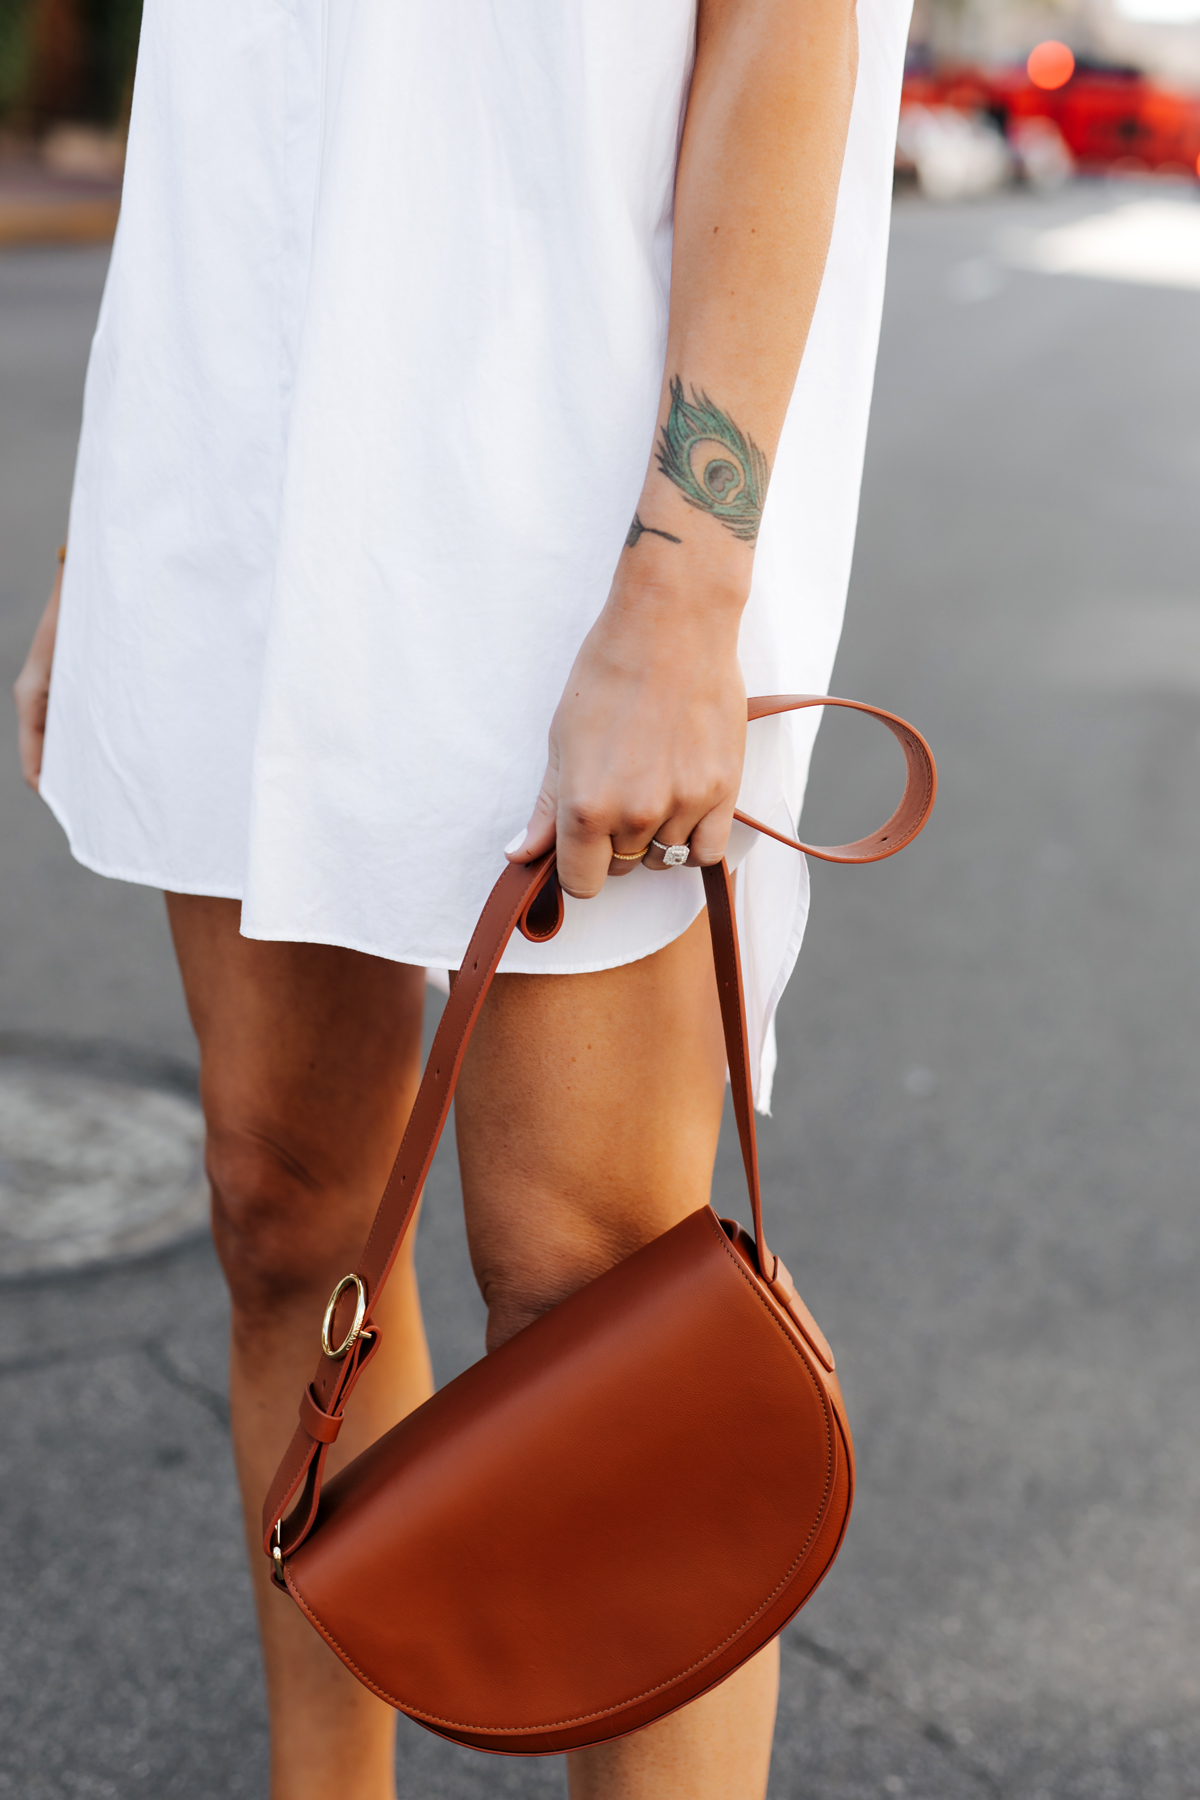 Woman Wearing White Shirtdress Cuyana Half Moon Bag Caramel Fashion Jackson San Diego Fashion Blogger Street Style